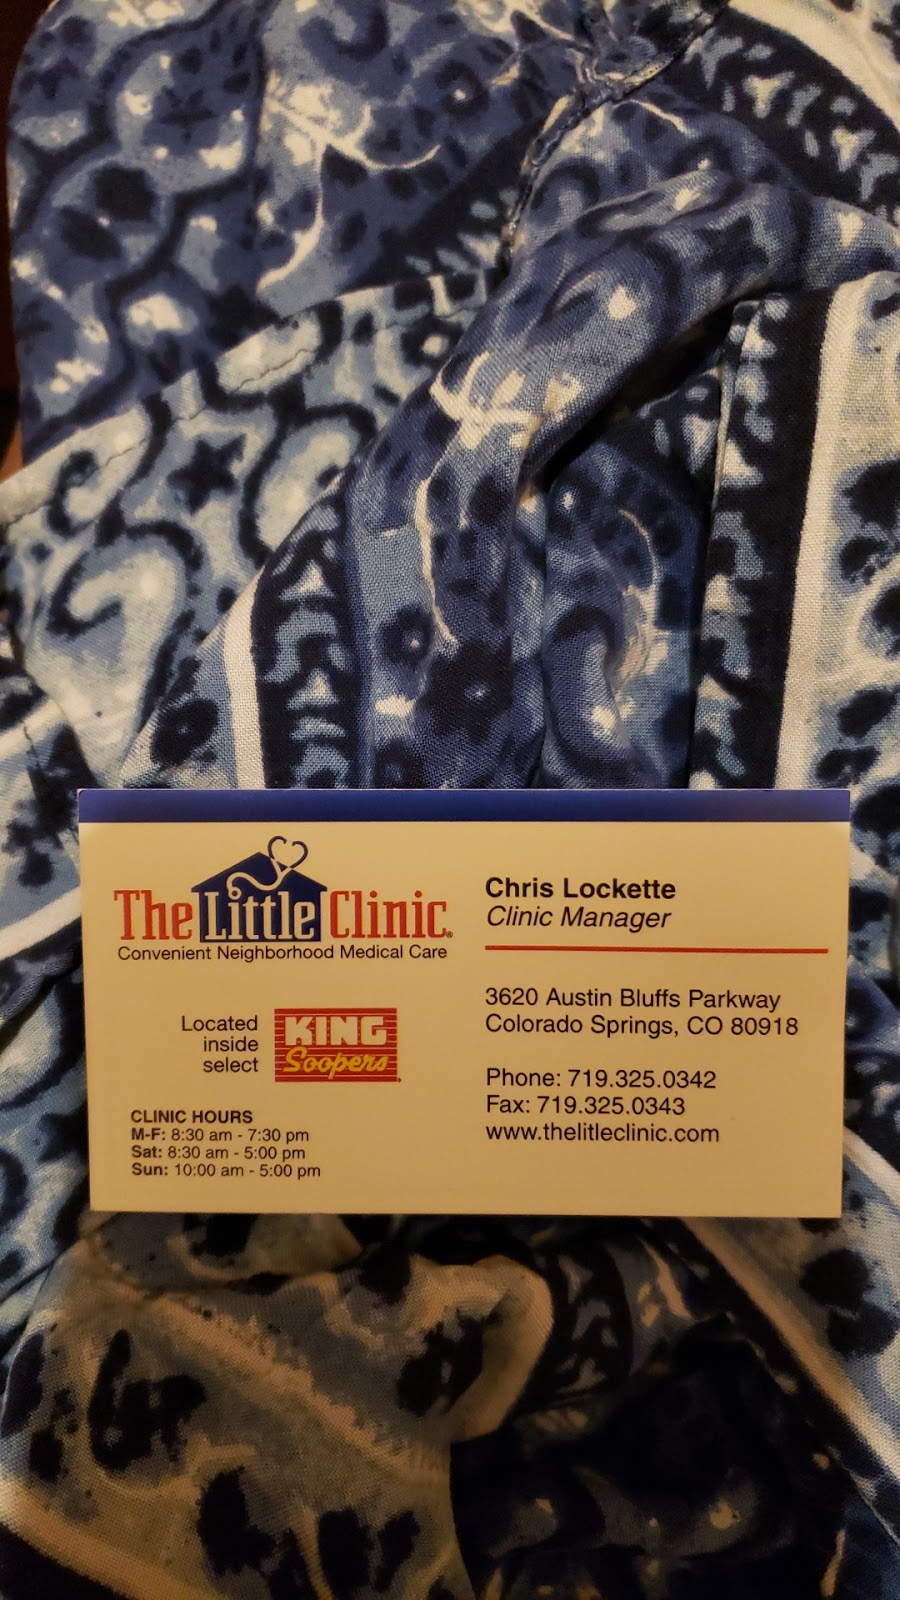 The Little Clinic - pharmacy  | Photo 2 of 3 | Address: 3620 Austin Bluffs Pkwy, Colorado Springs, CO 80918, USA | Phone: (719) 325-0342